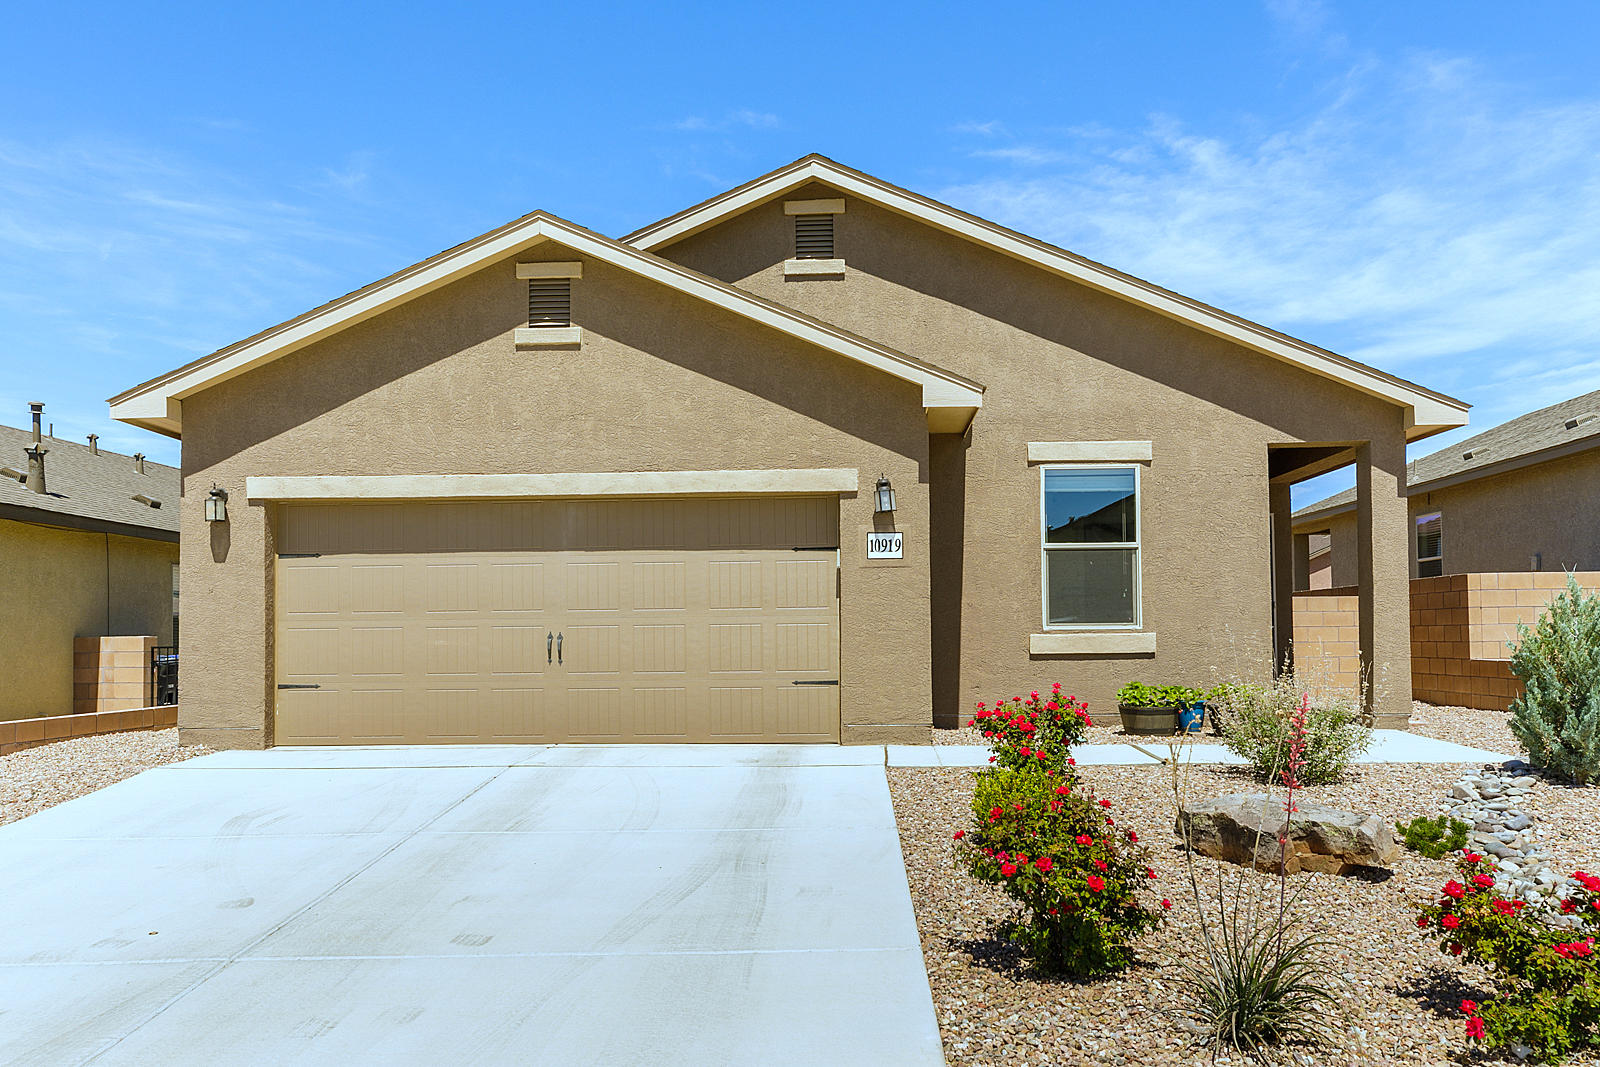 Welcome to a young home! Why Rent when you can own? 3 nice sized bedrooms! 2 full baths! Owners Suite has walk-in closet.  Open Living, Kitchen and Dining area. Granite counters, Refrigerator, Gas Range, Dishwasher and Microwave are included.  This home was complete in November of 2017 so the roof is young, the heating and cooling are young and the water heater is young. Samsung washer and dryer are included! The back yard is ready for your imagination. 2 car garage with quiet opener! Located in an upscale neighborhood. You better move fast, cause this one won't last.